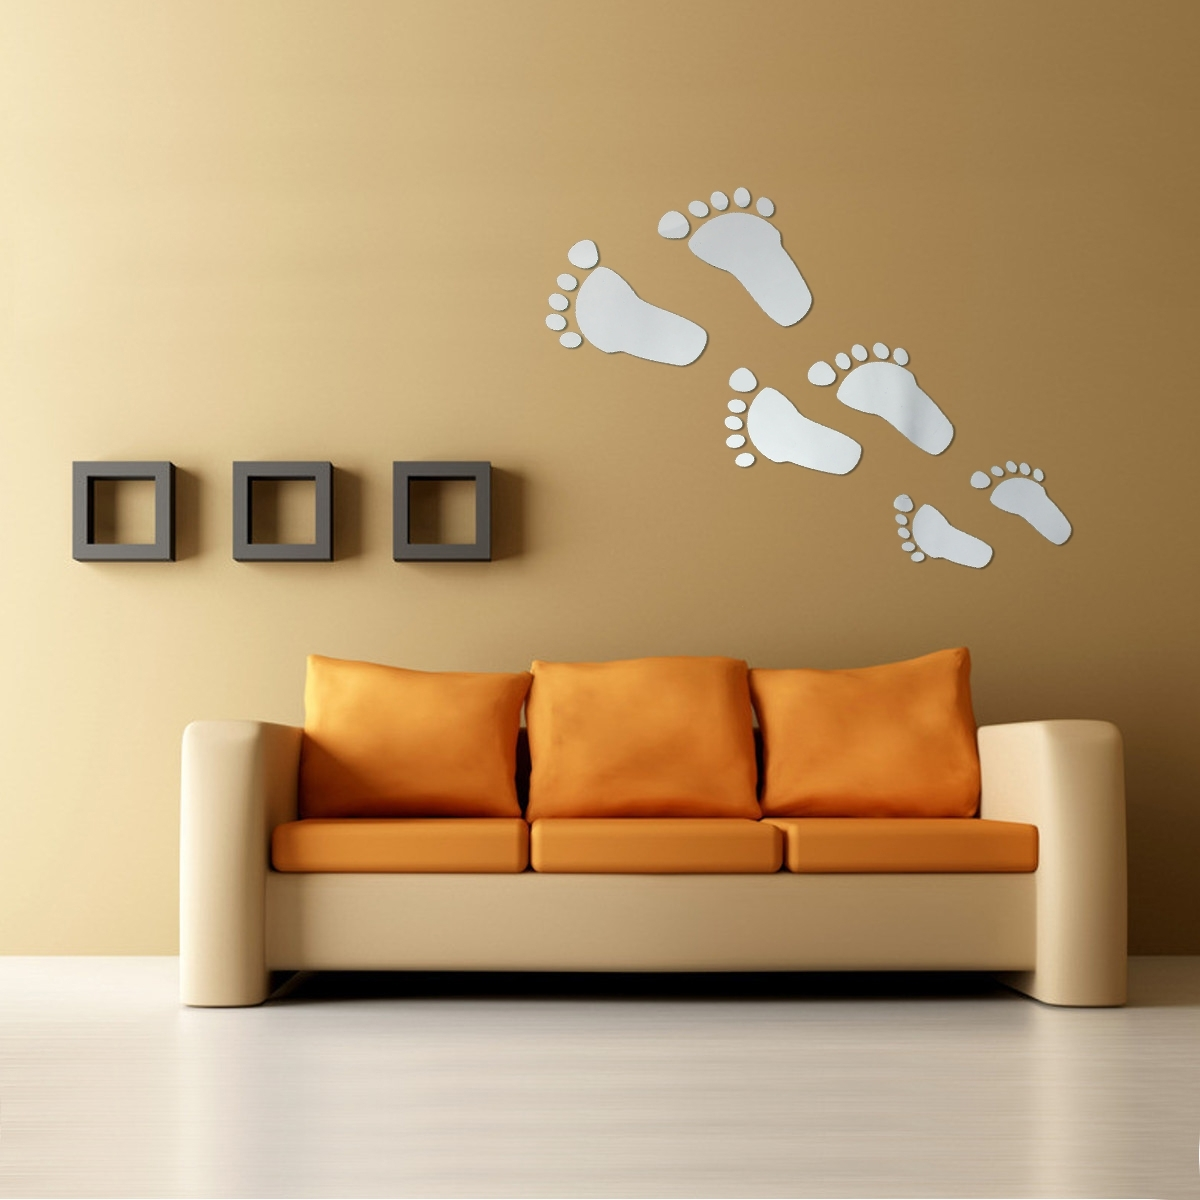 6pcs Diy Footprint Acrylic Wall Sticker Fat Footprints Mirror Wall In 2017 Acrylic Wall Art (View 13 of 20)